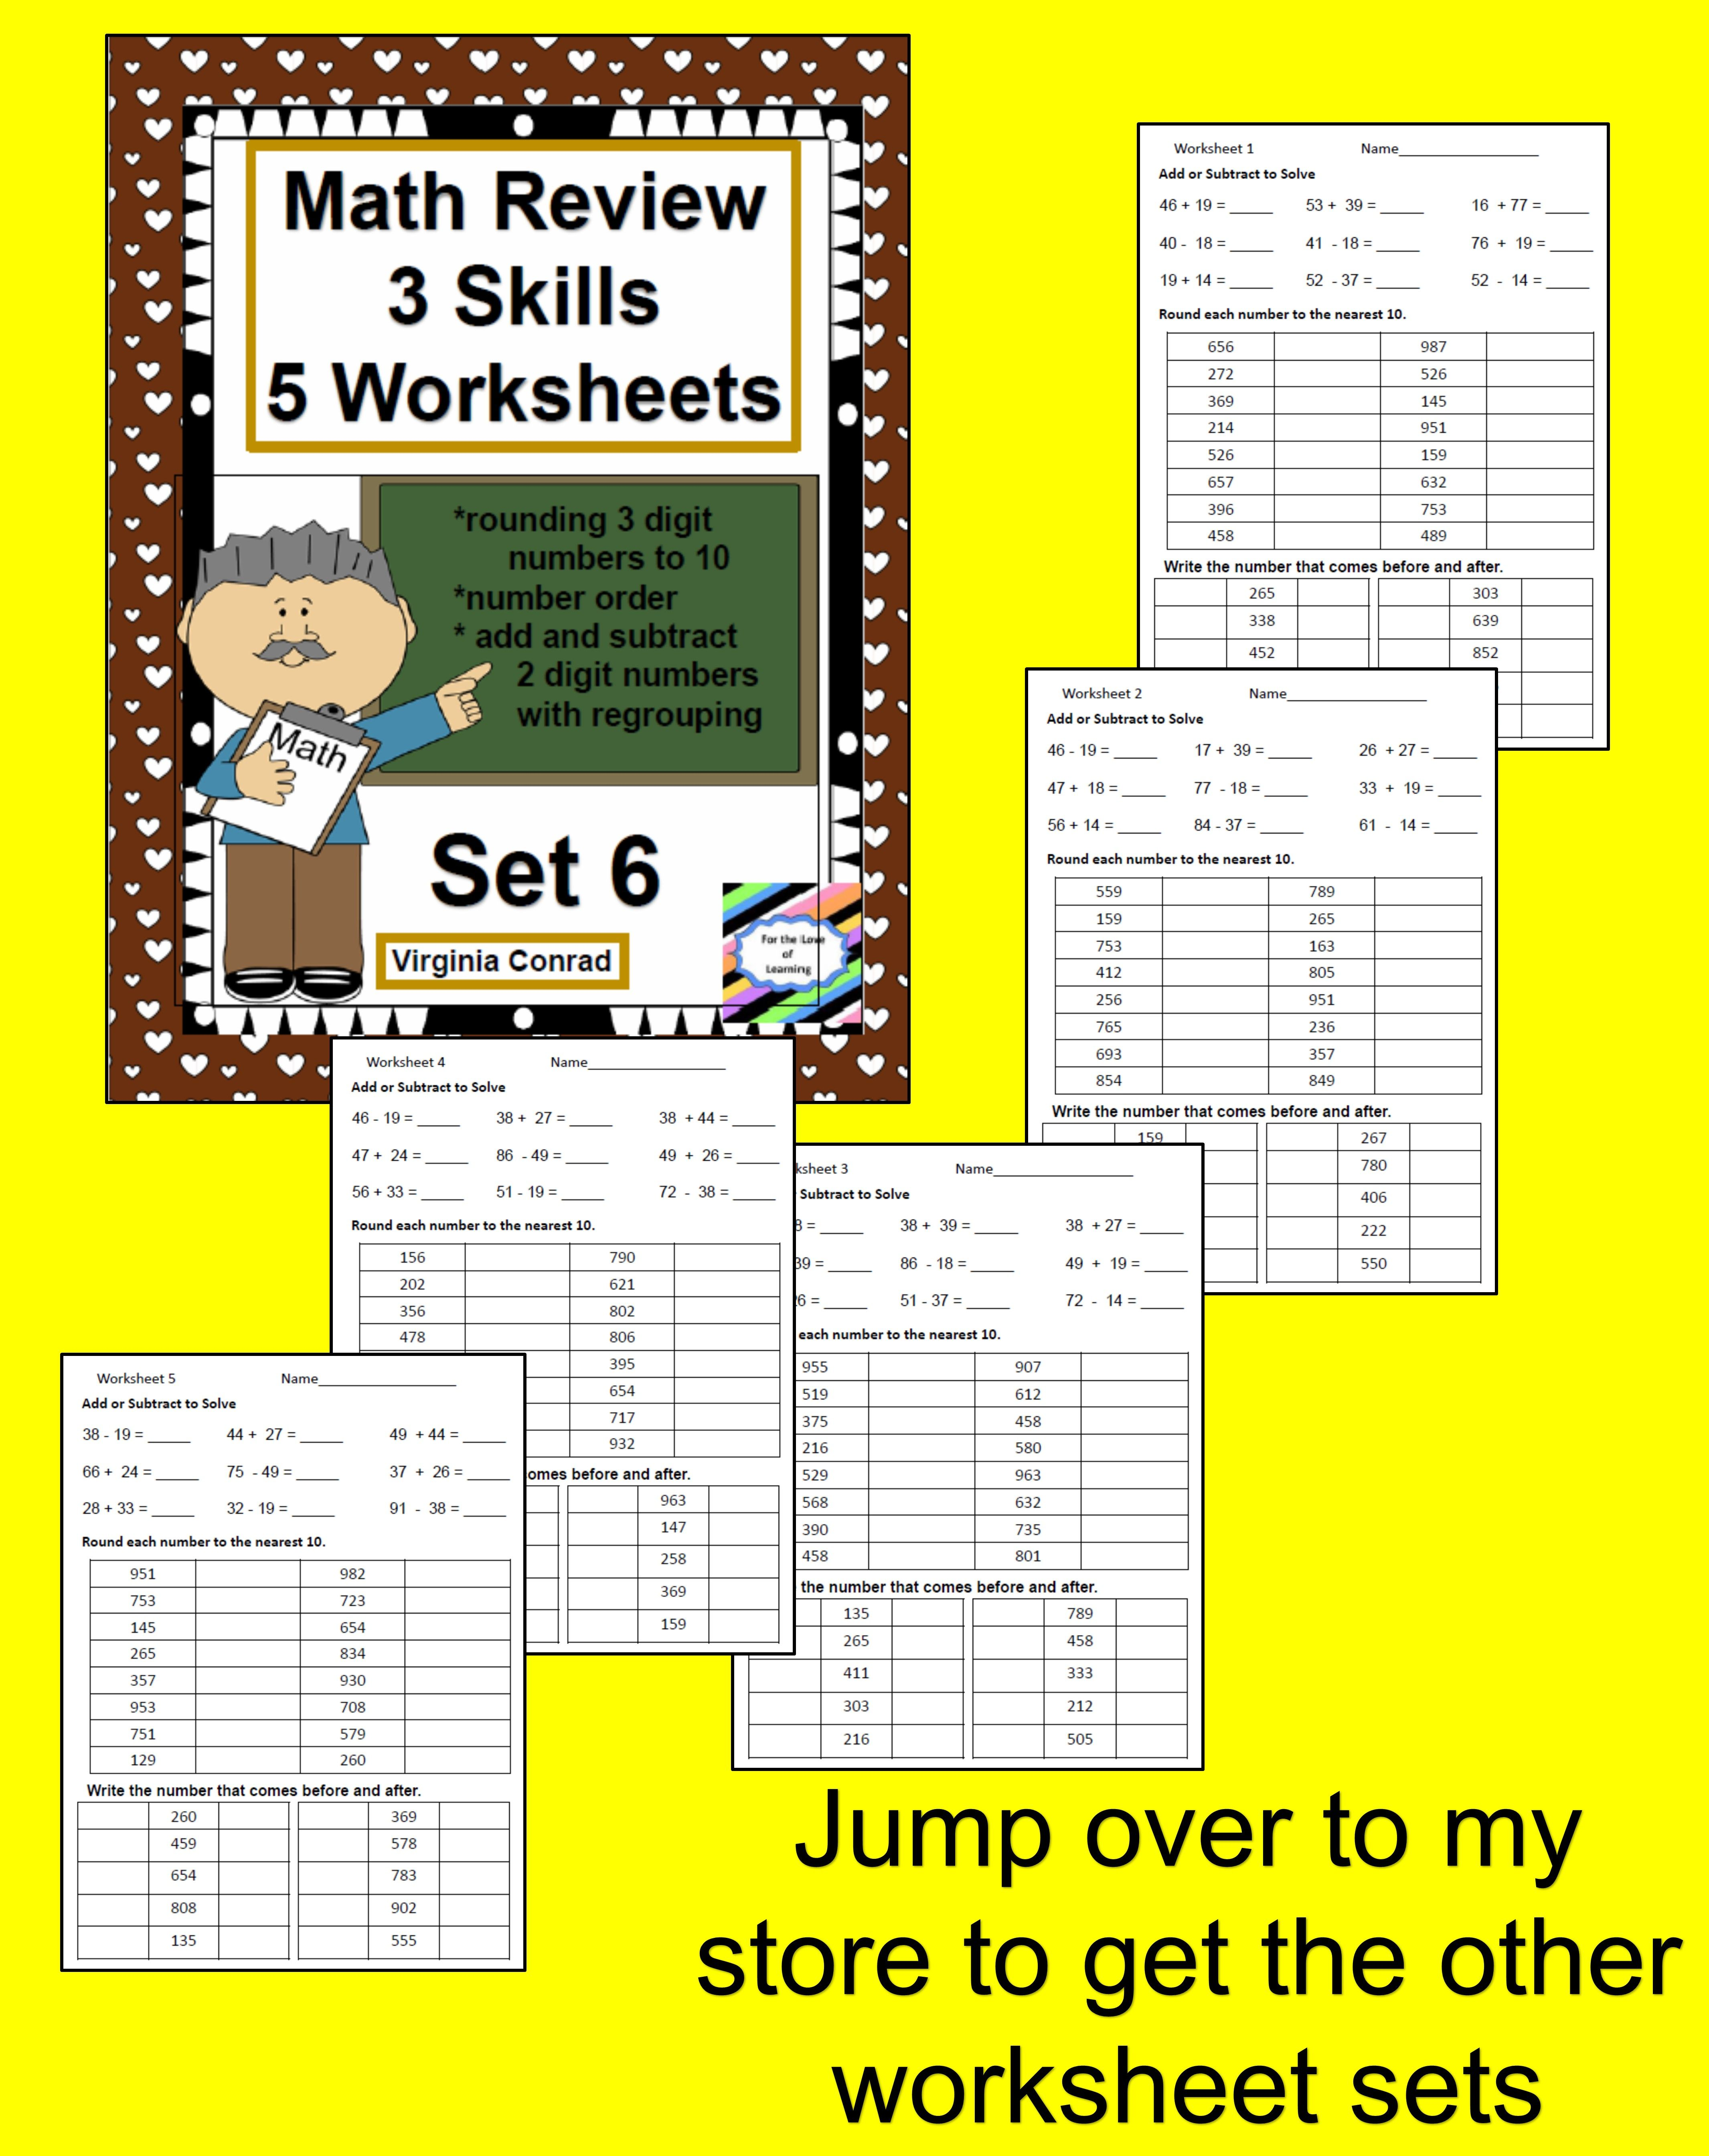 Math Review Worksheets 3 Skills For 5 Days Set 6